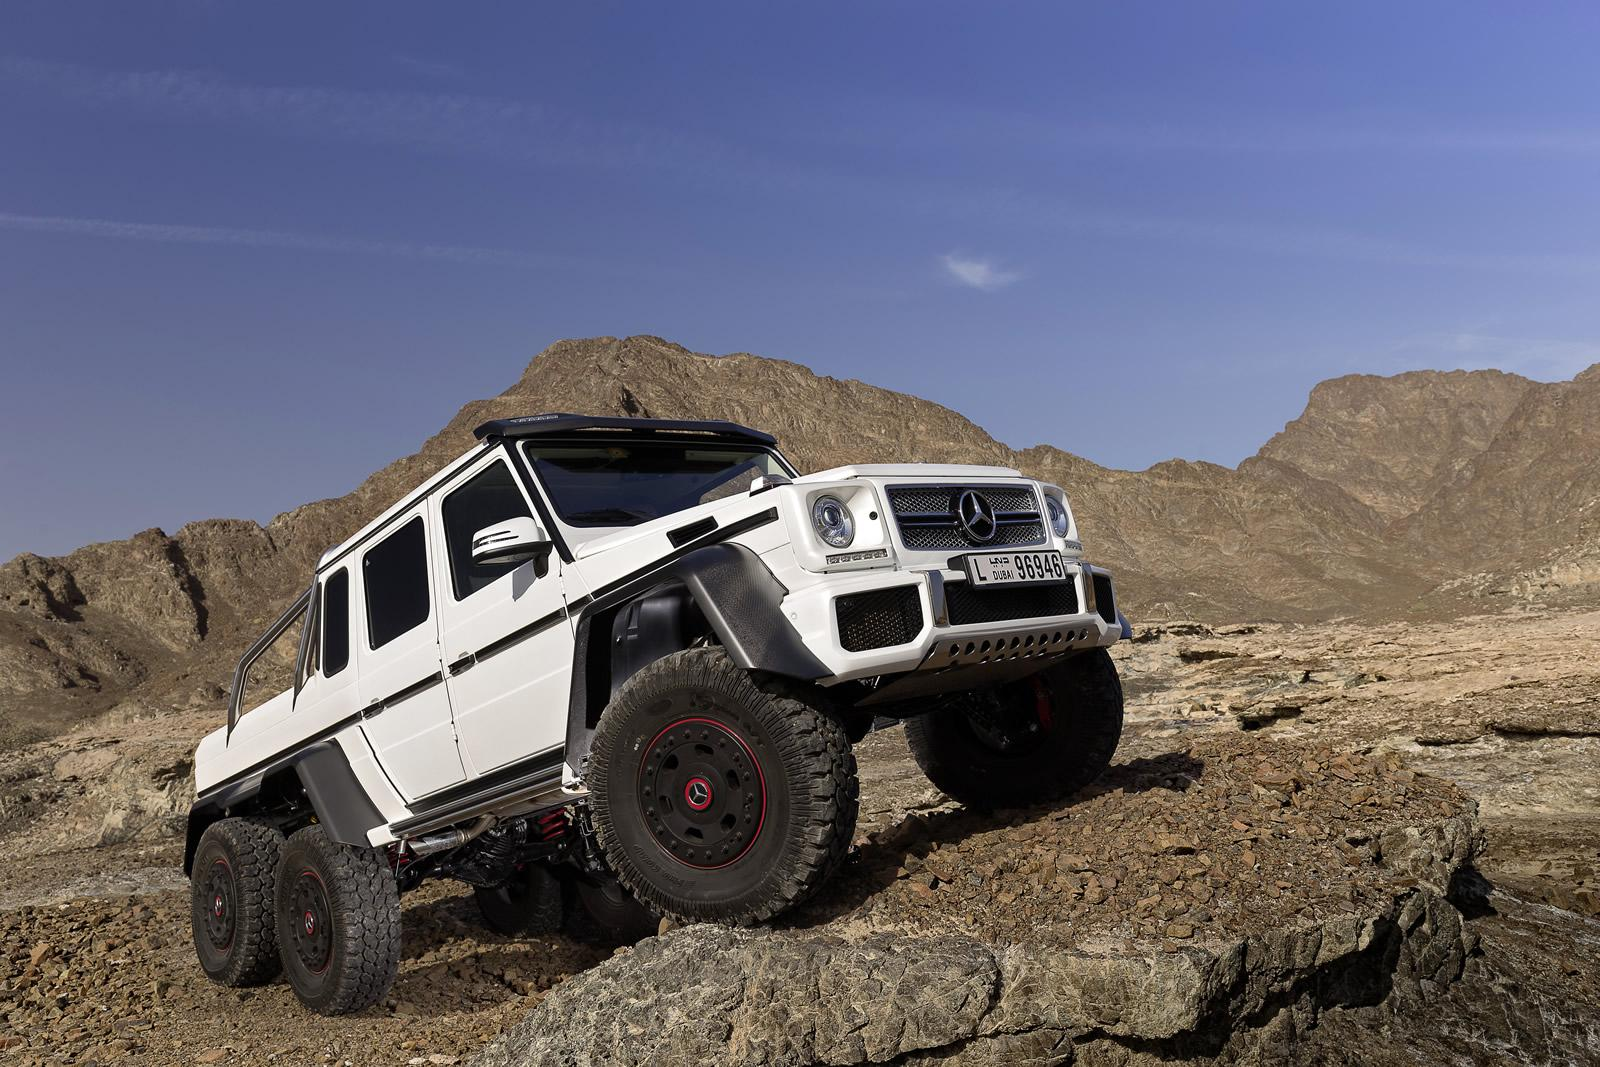 6x6 mercedes benz g63 amg pics aplenty autoevolution for Mercedes benz g63 6x6 amg